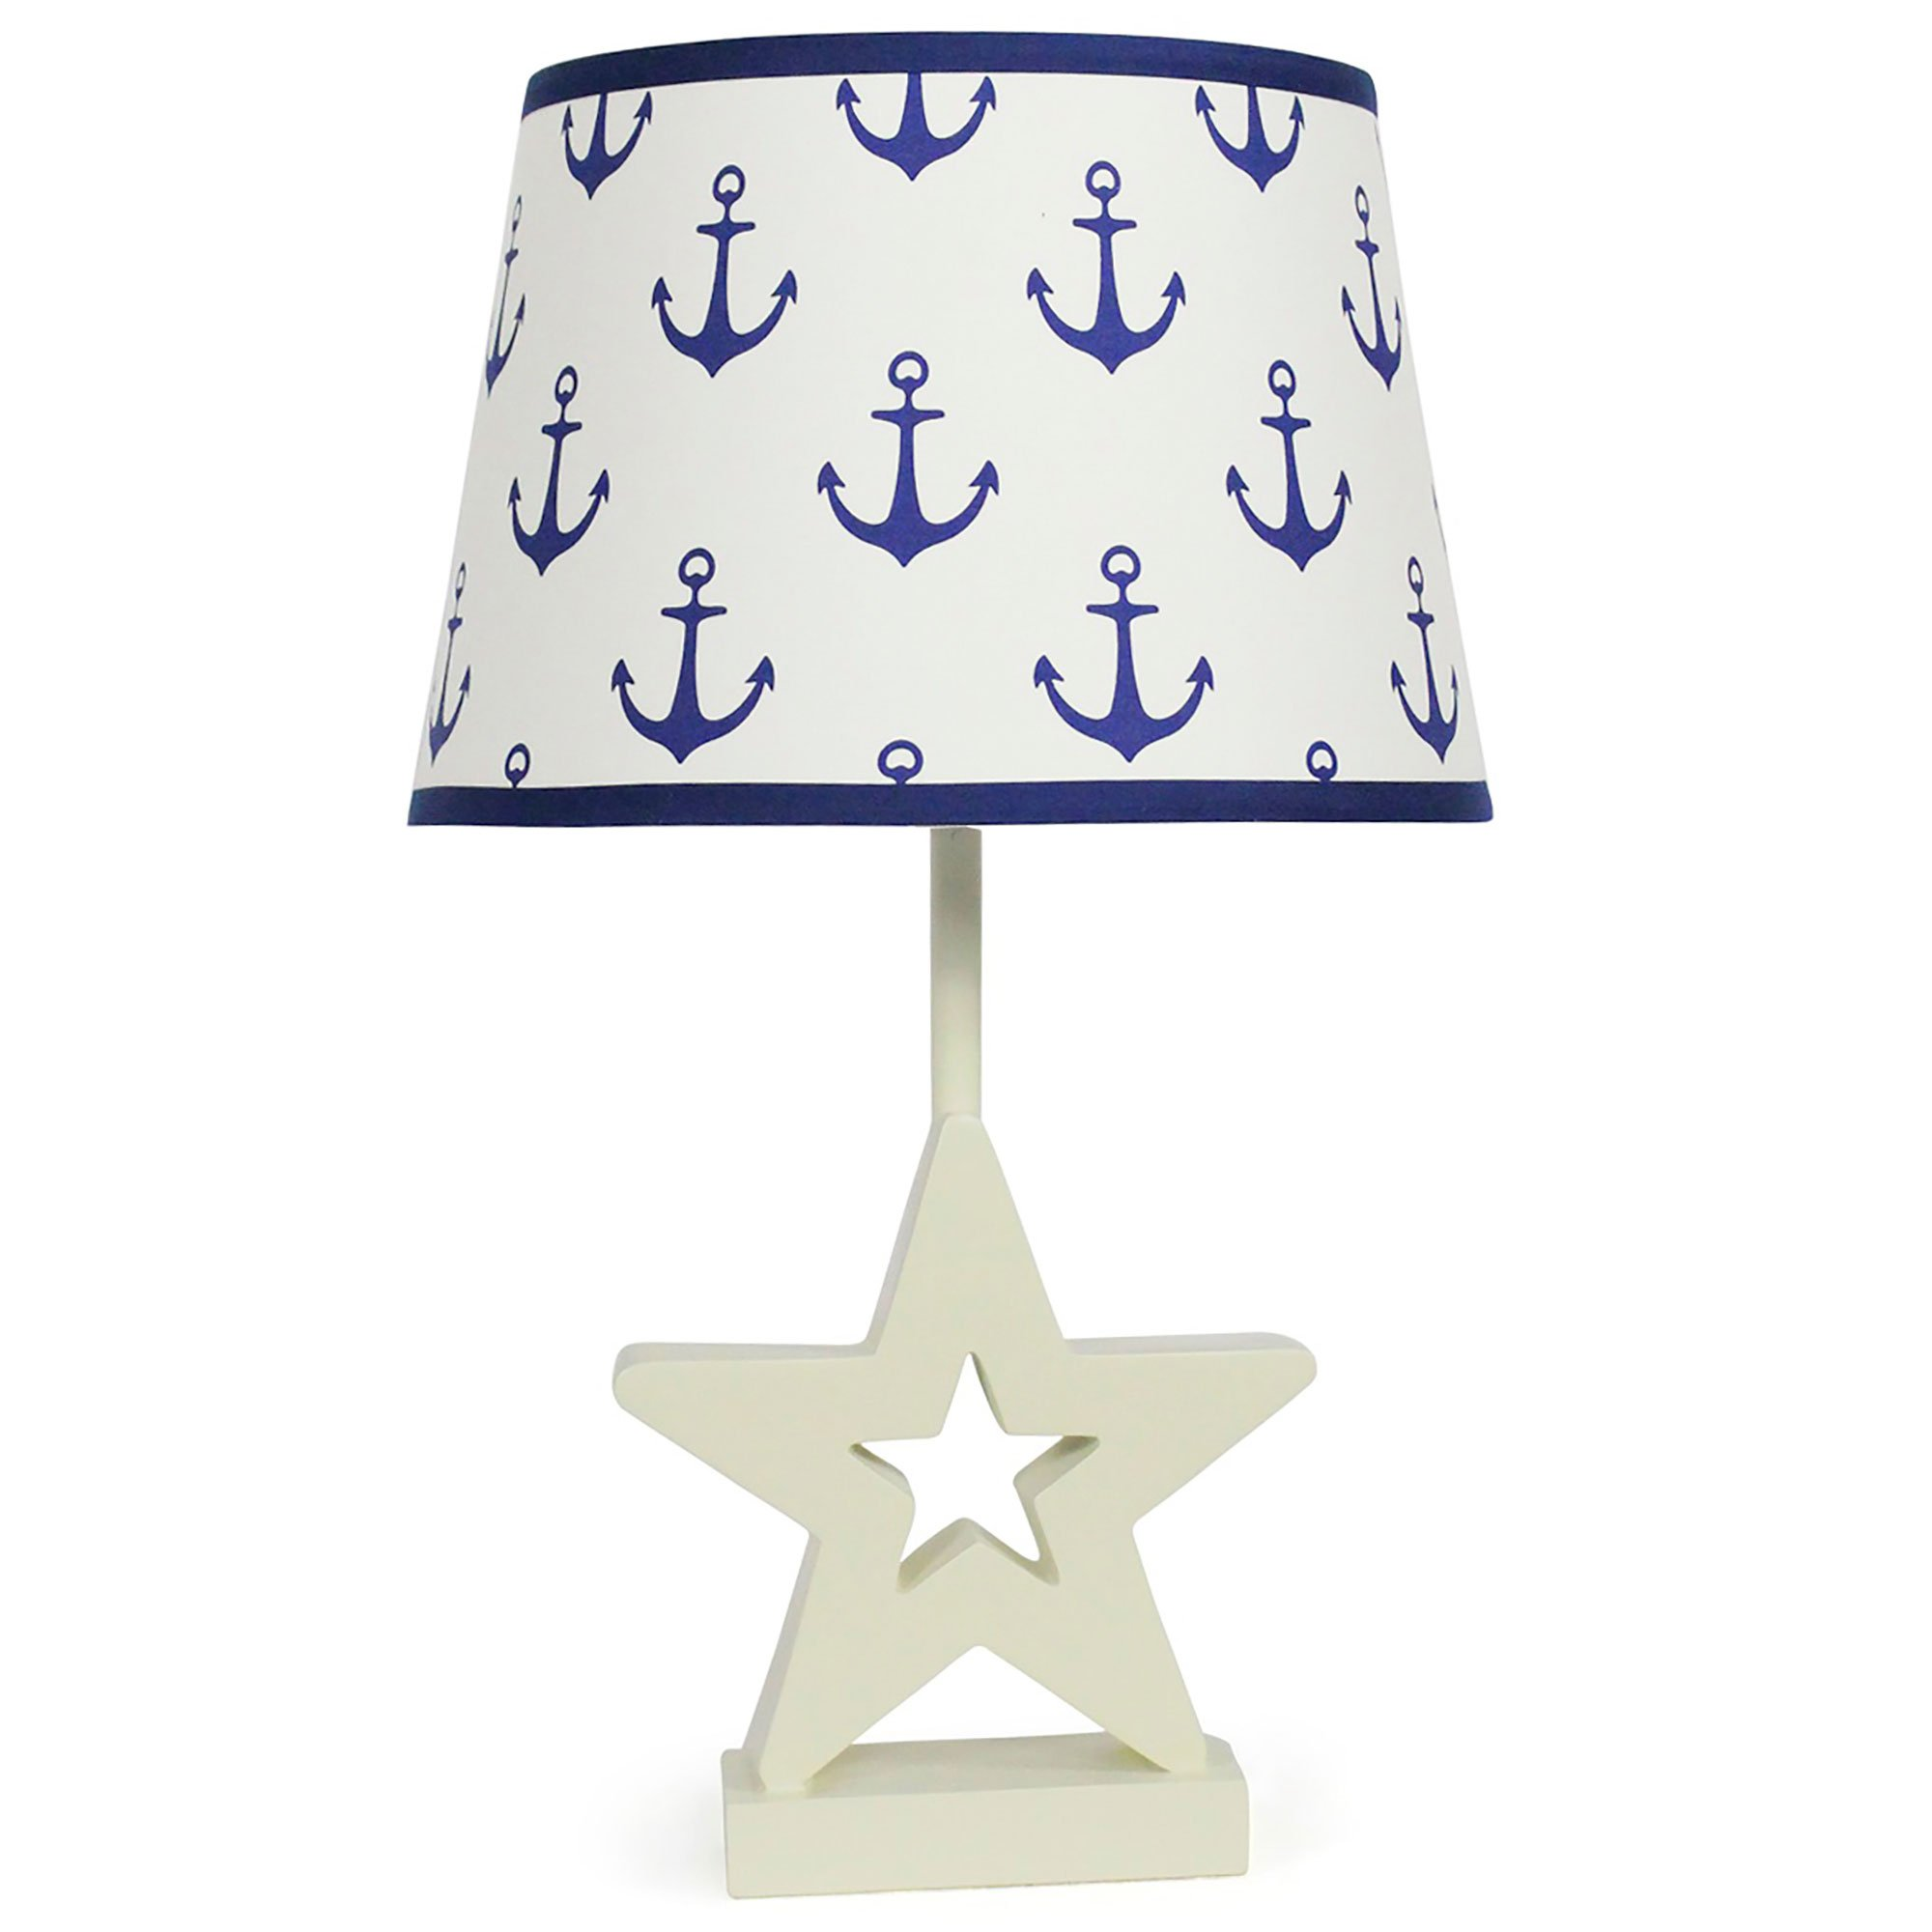 Navy Blue Anchor Nursery Lamp Shade with White Star Base, CFL Bulb Included